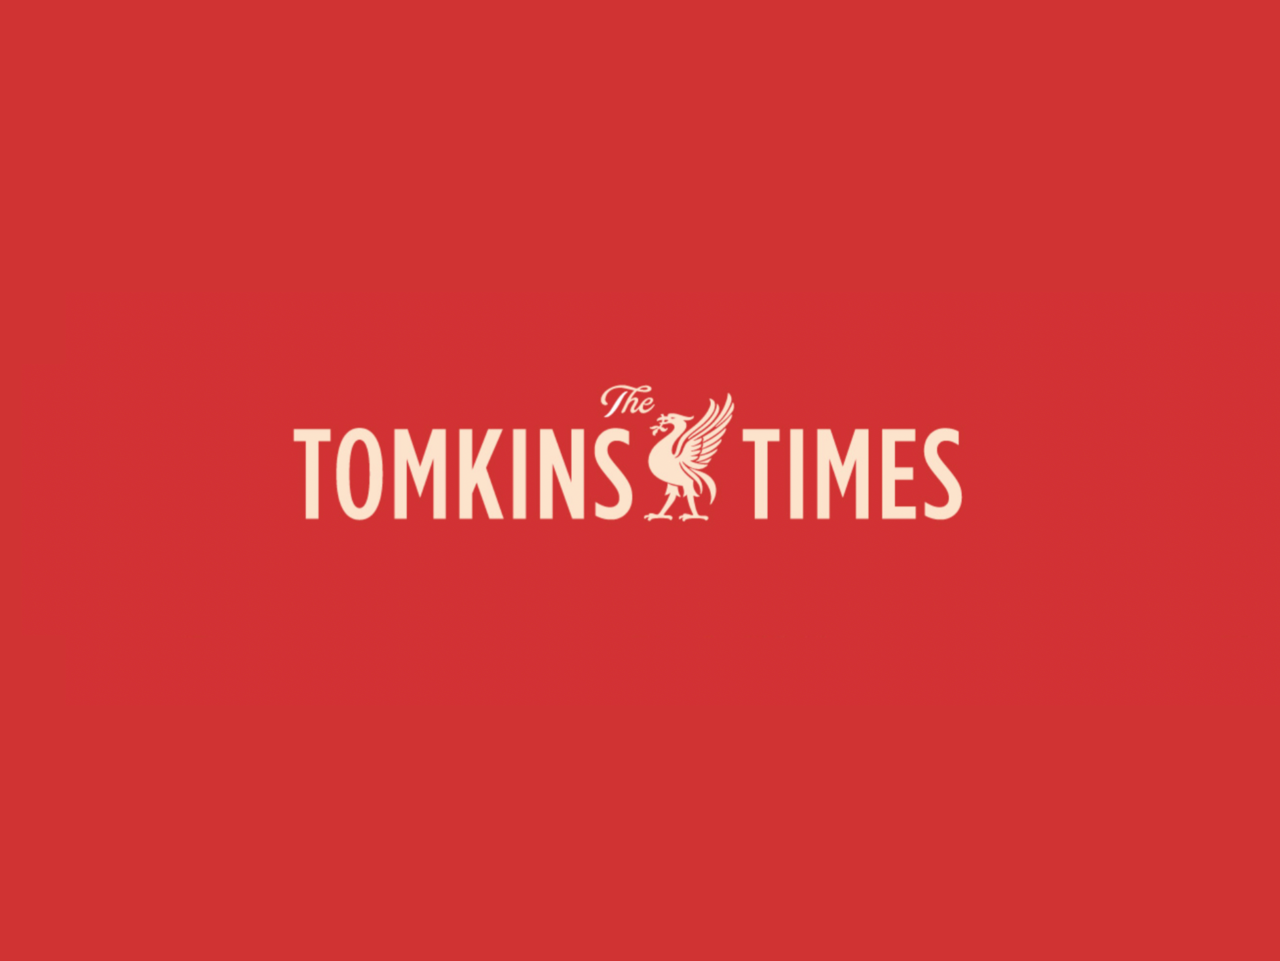 The Tomkins Times Extra